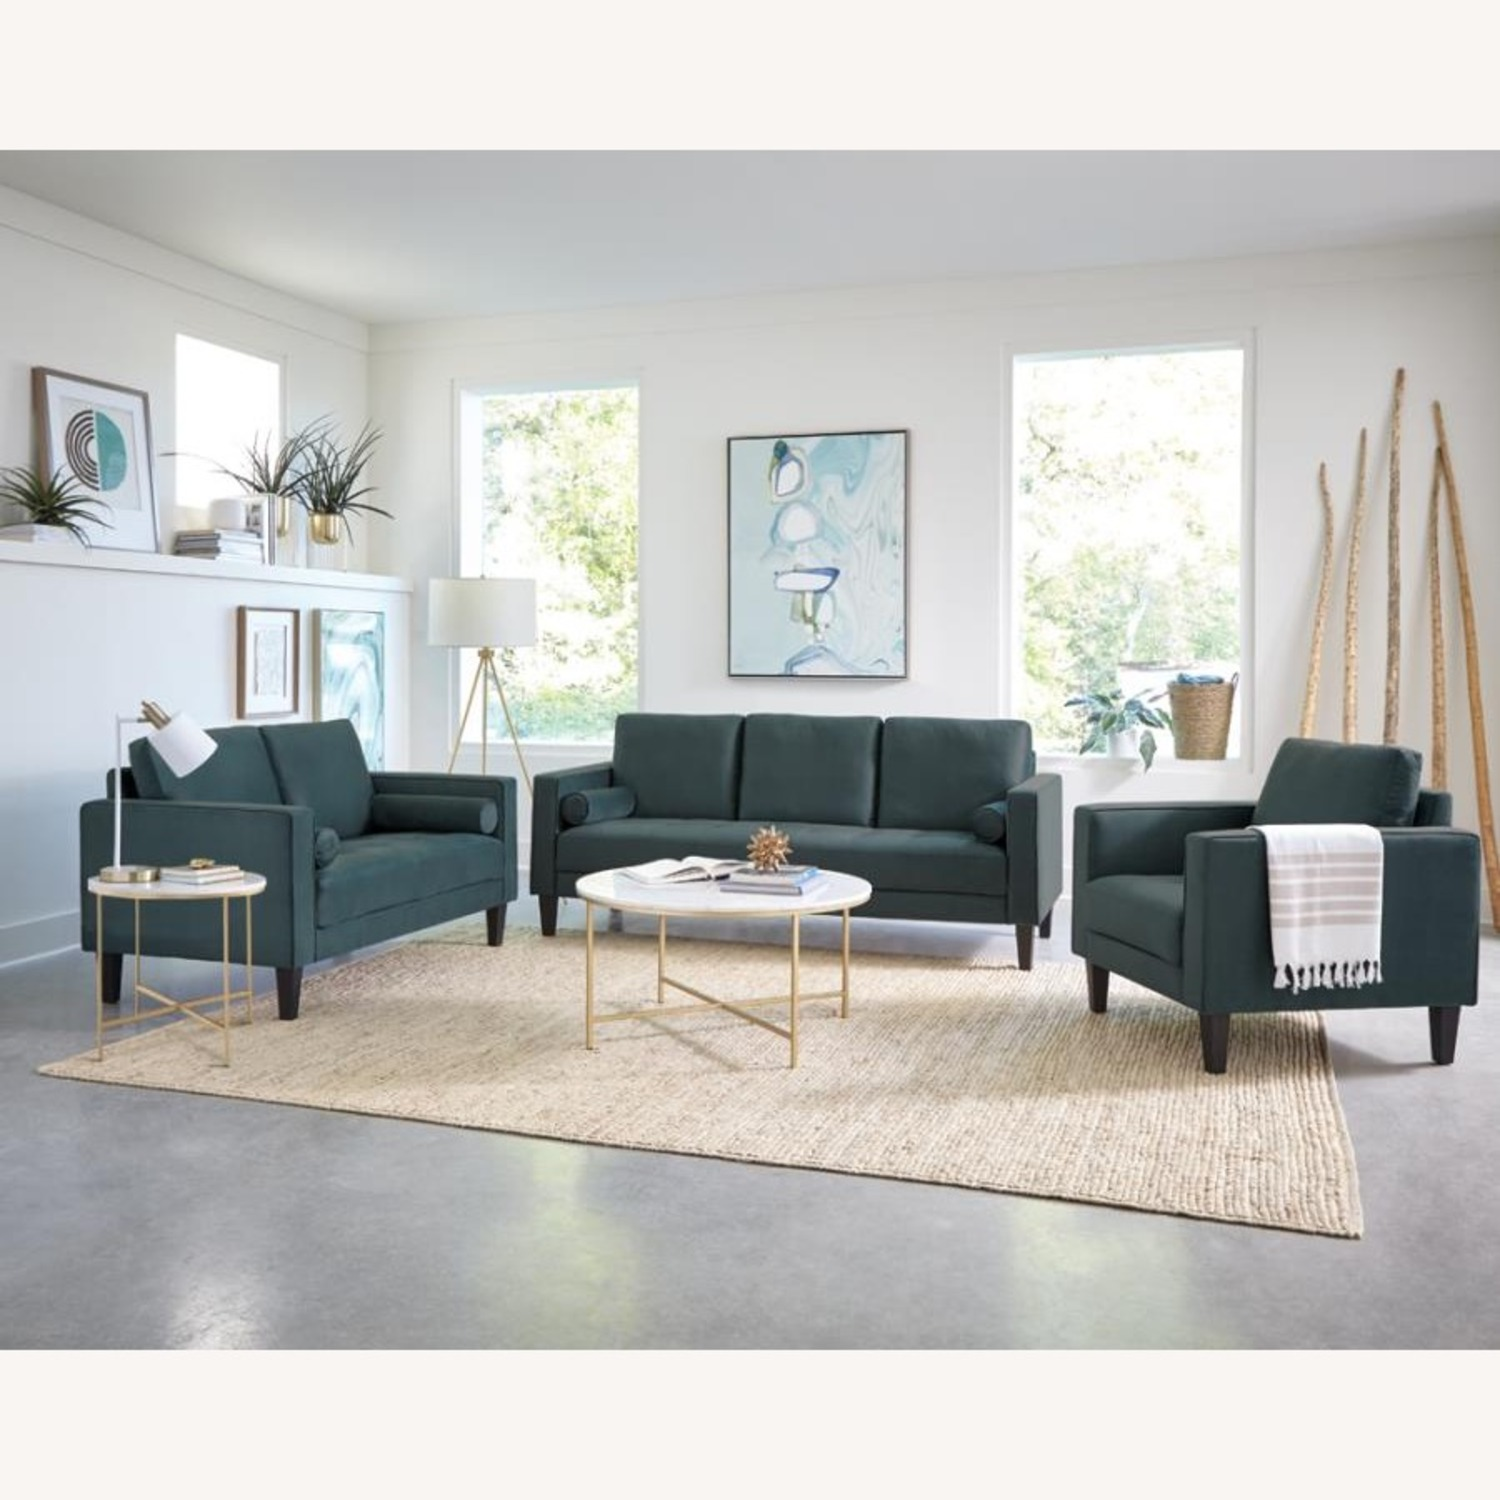 Loveseat In Dark Teal Finish W/ Tall Tapered Legs - image-2